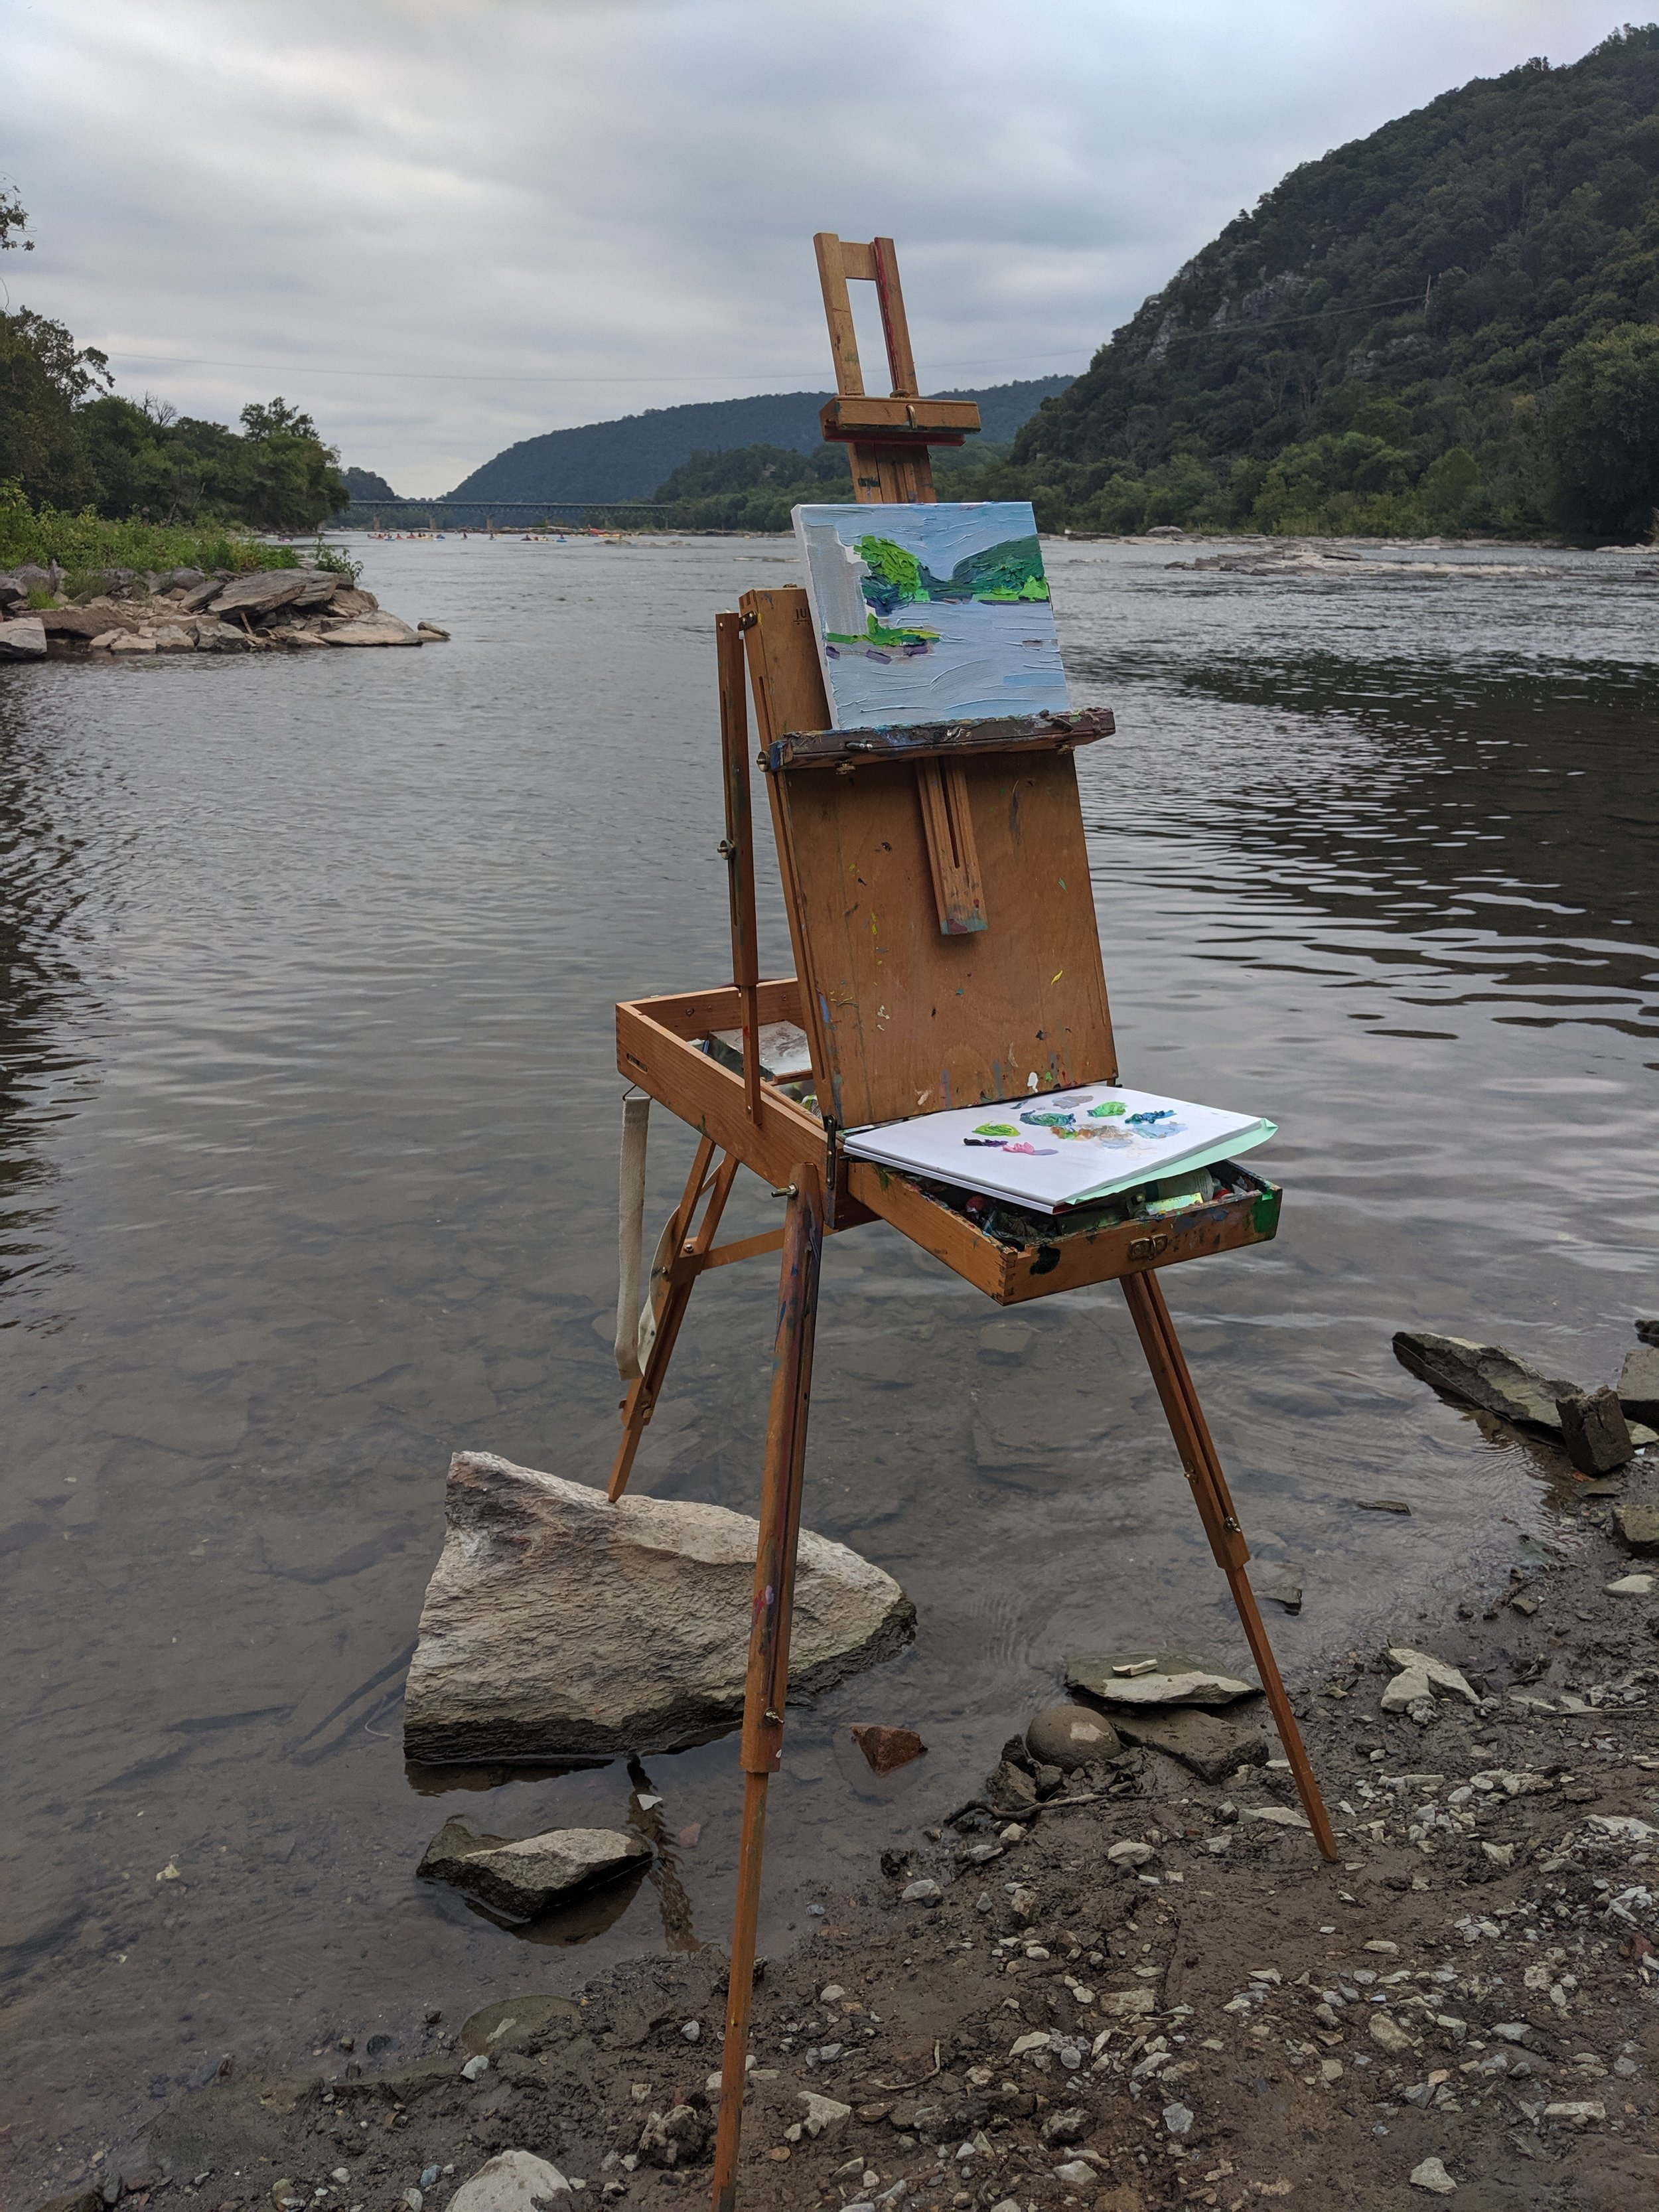 painting at harpers ferry.jpg